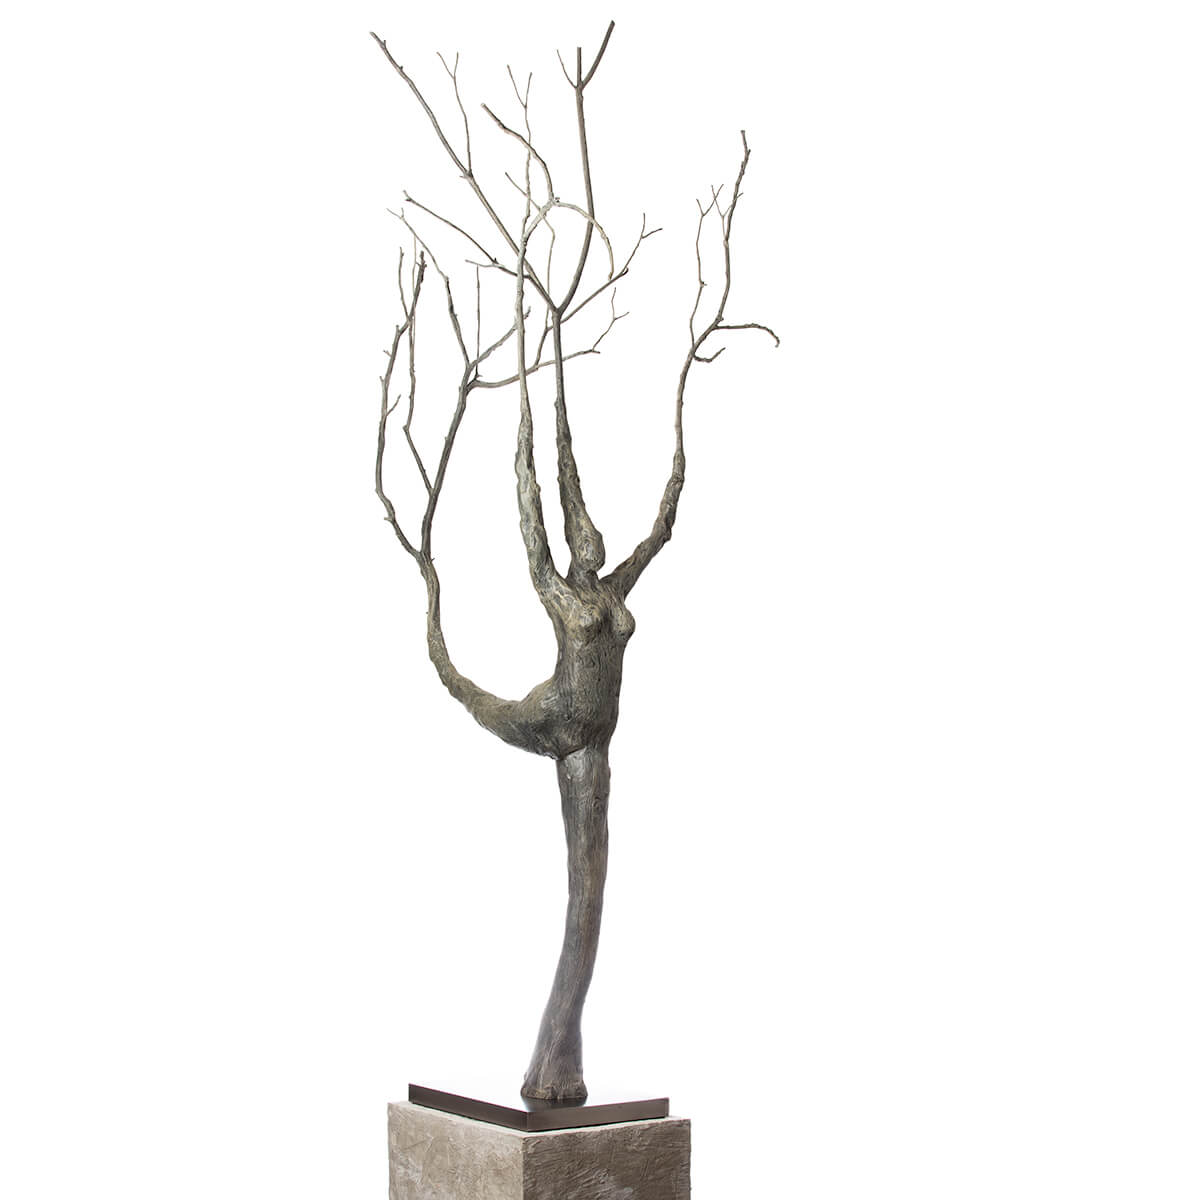 Robert-Helle-Sculpture-Gallery-Abstract-Lady-in-the-Tree-3-1200x1200